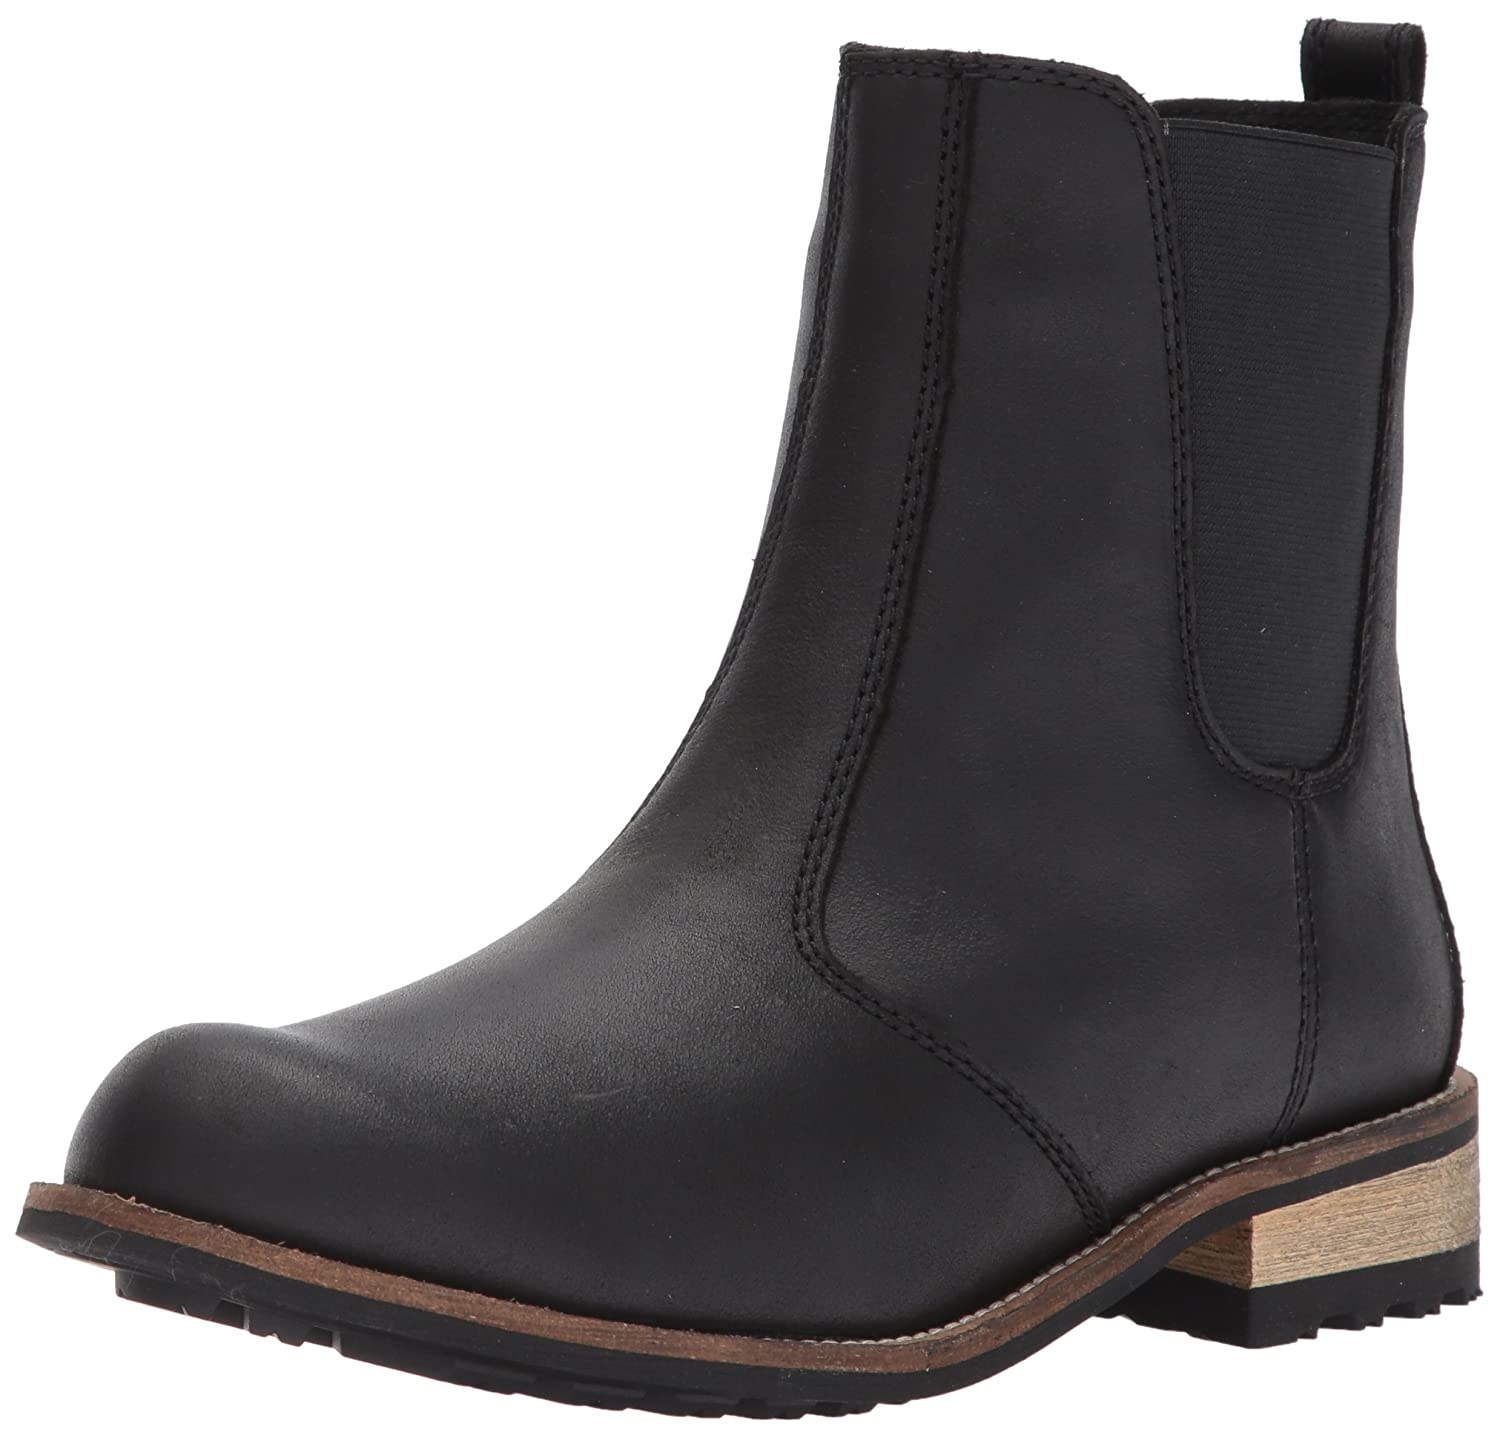 Kodiak Women's Alma Chelsea Boot B016M8NZP0 6 B(M) US|Black 001